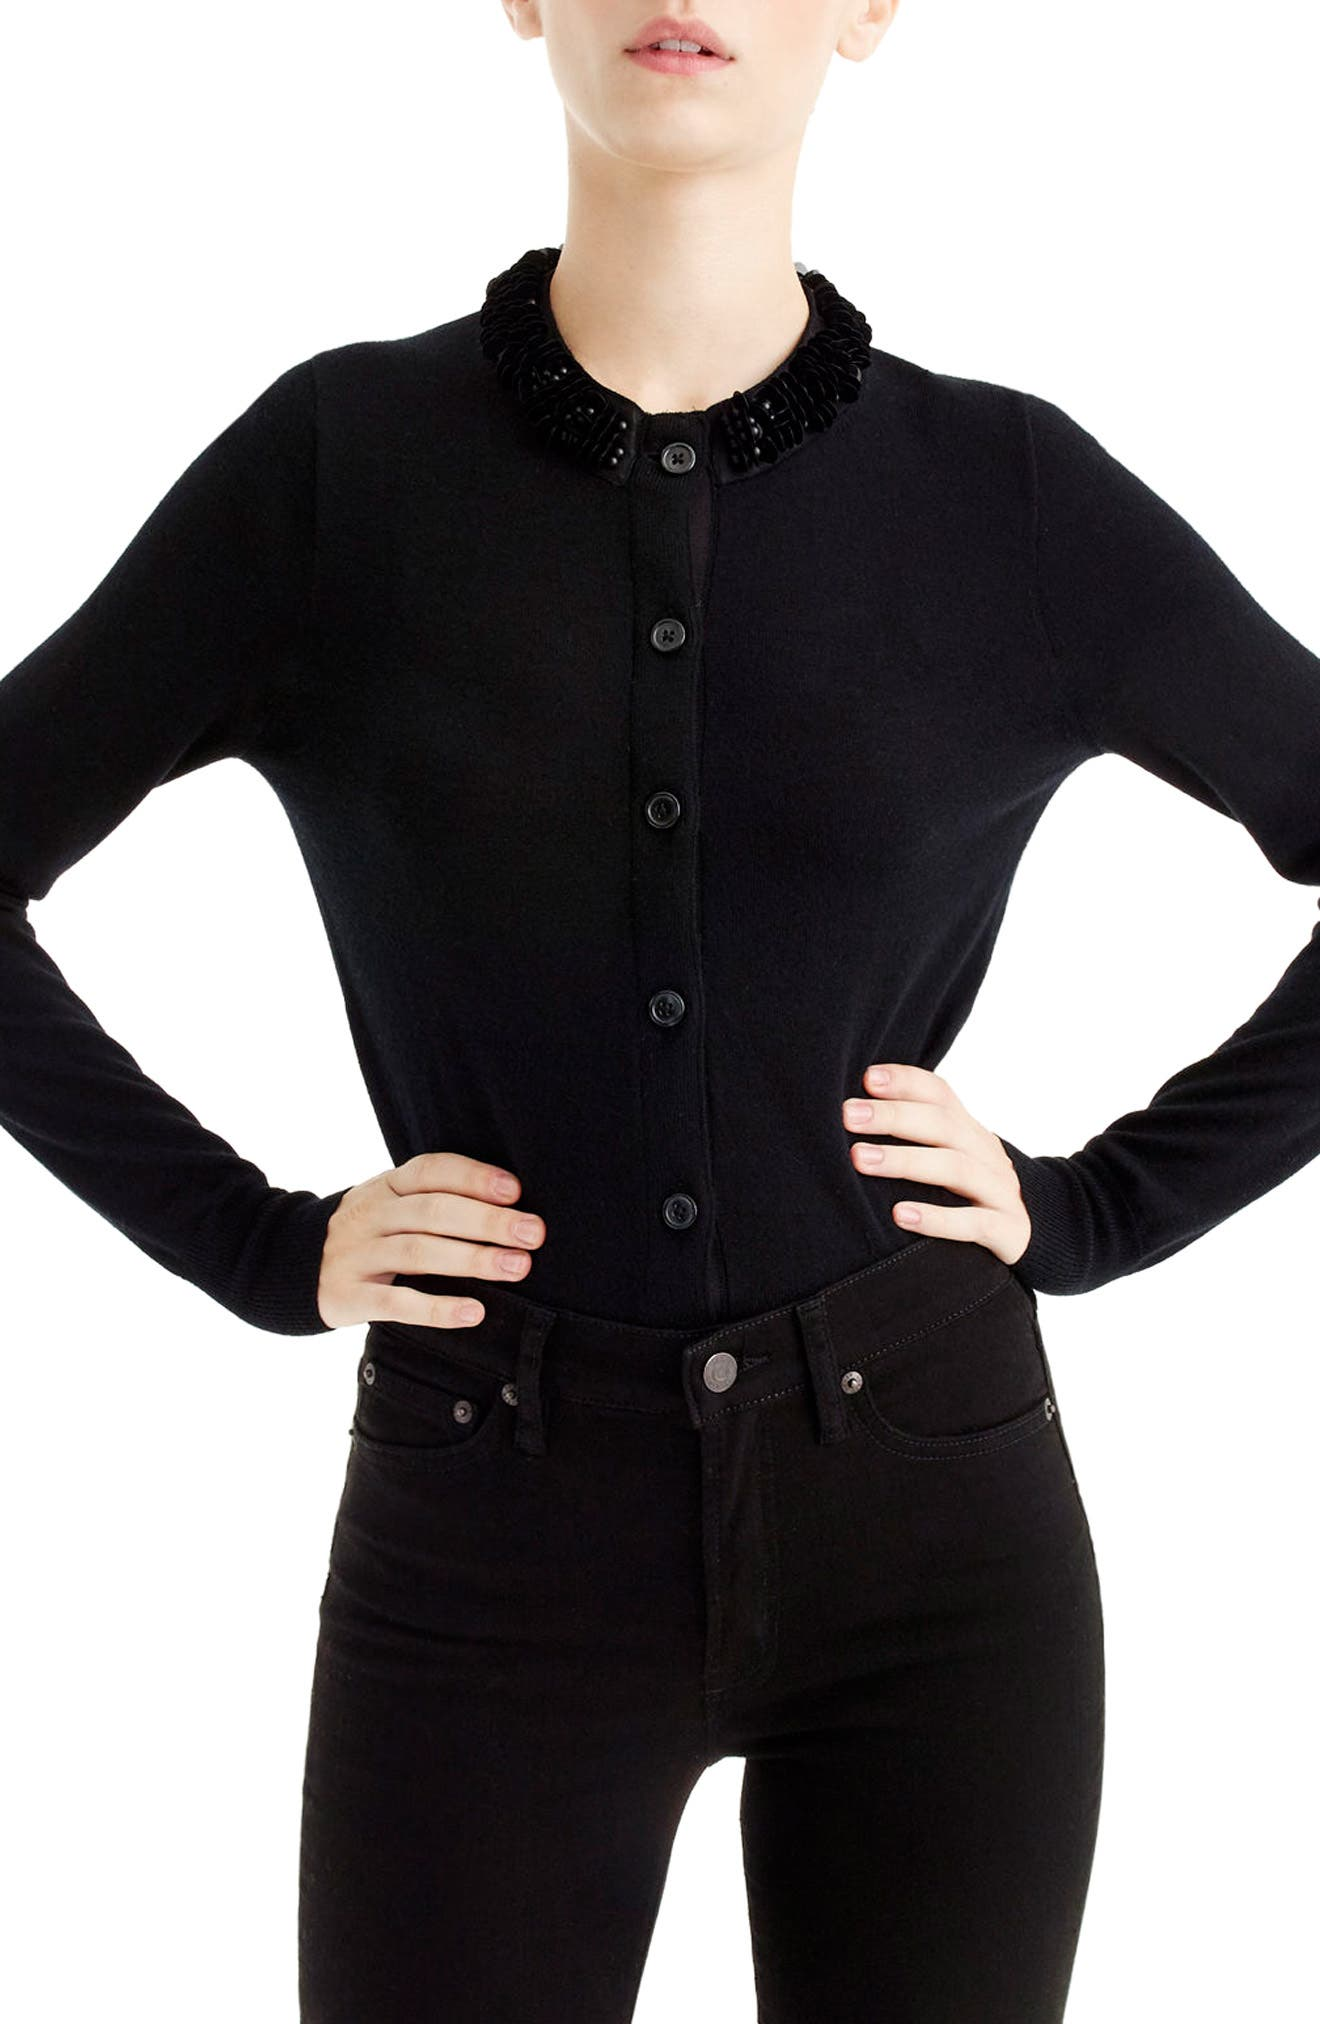 J.Crew Embellished Jackie Cardigan,                             Main thumbnail 1, color,                             Black